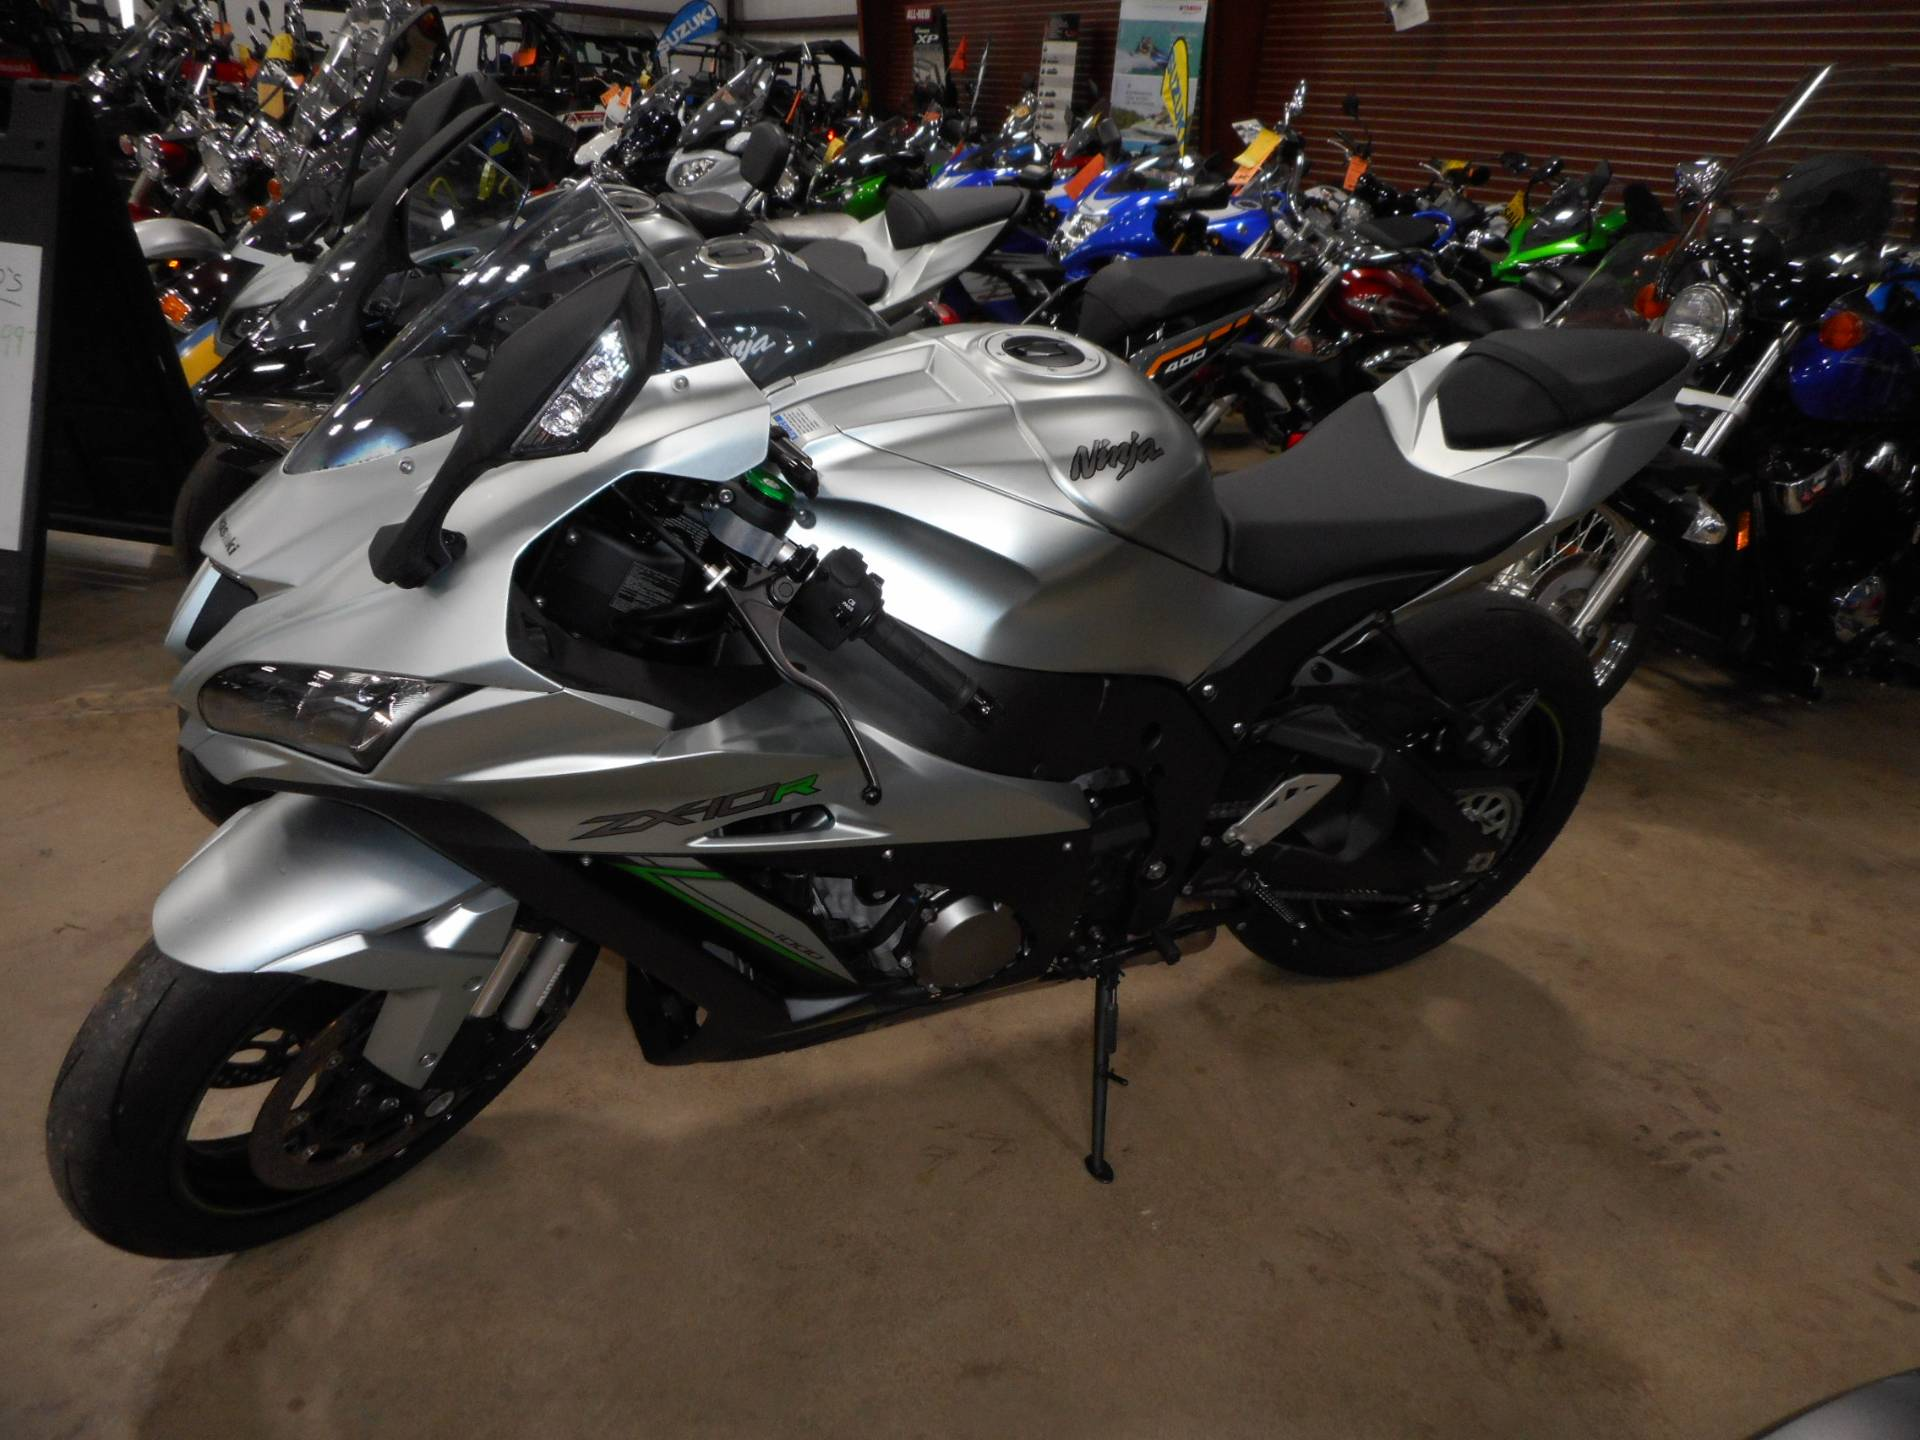 2018 Kawasaki Ninja ZX-10R in Belvidere, Illinois - Photo 1